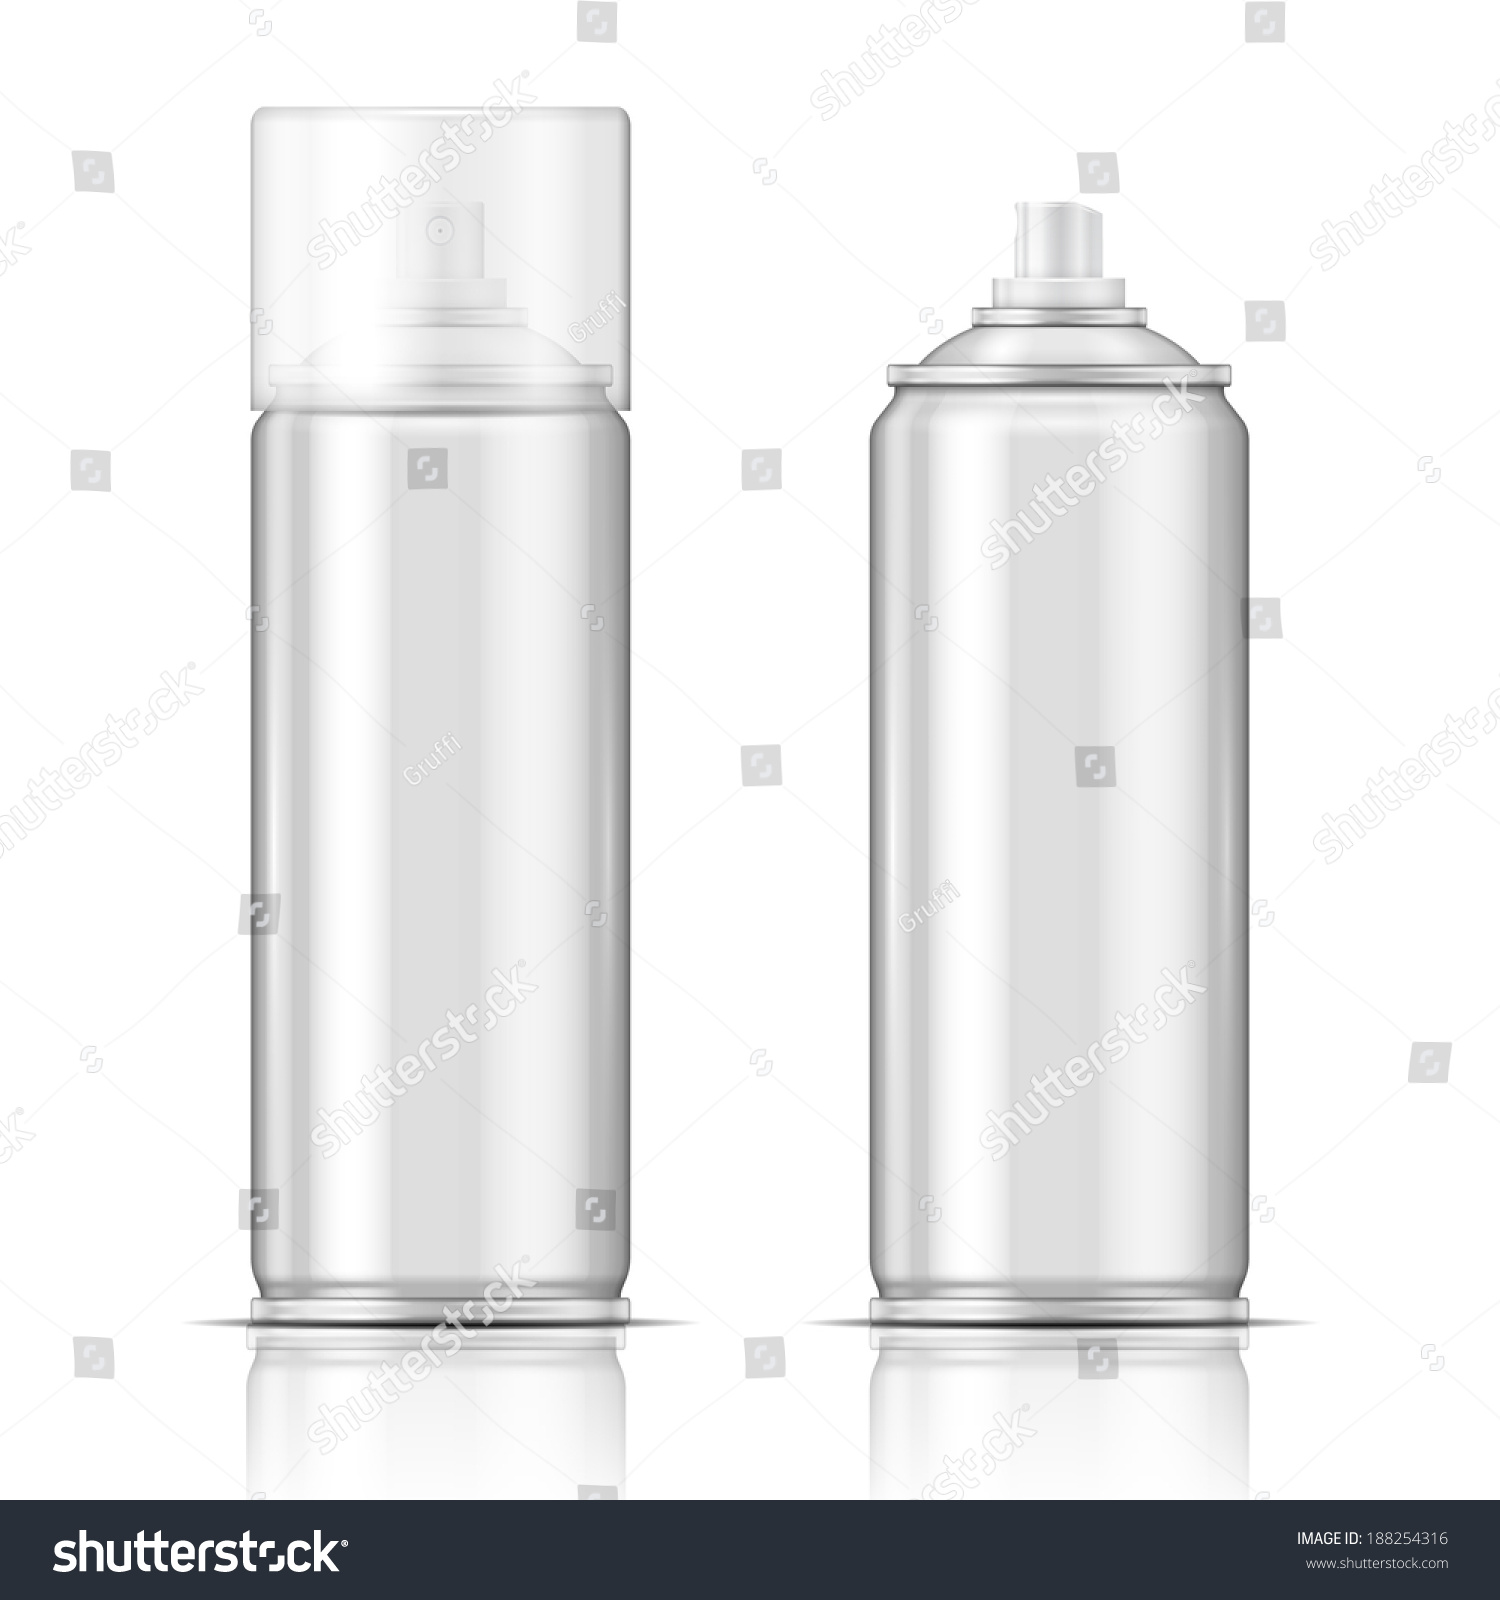 Clipart Images Of A Hair Spray Bottle